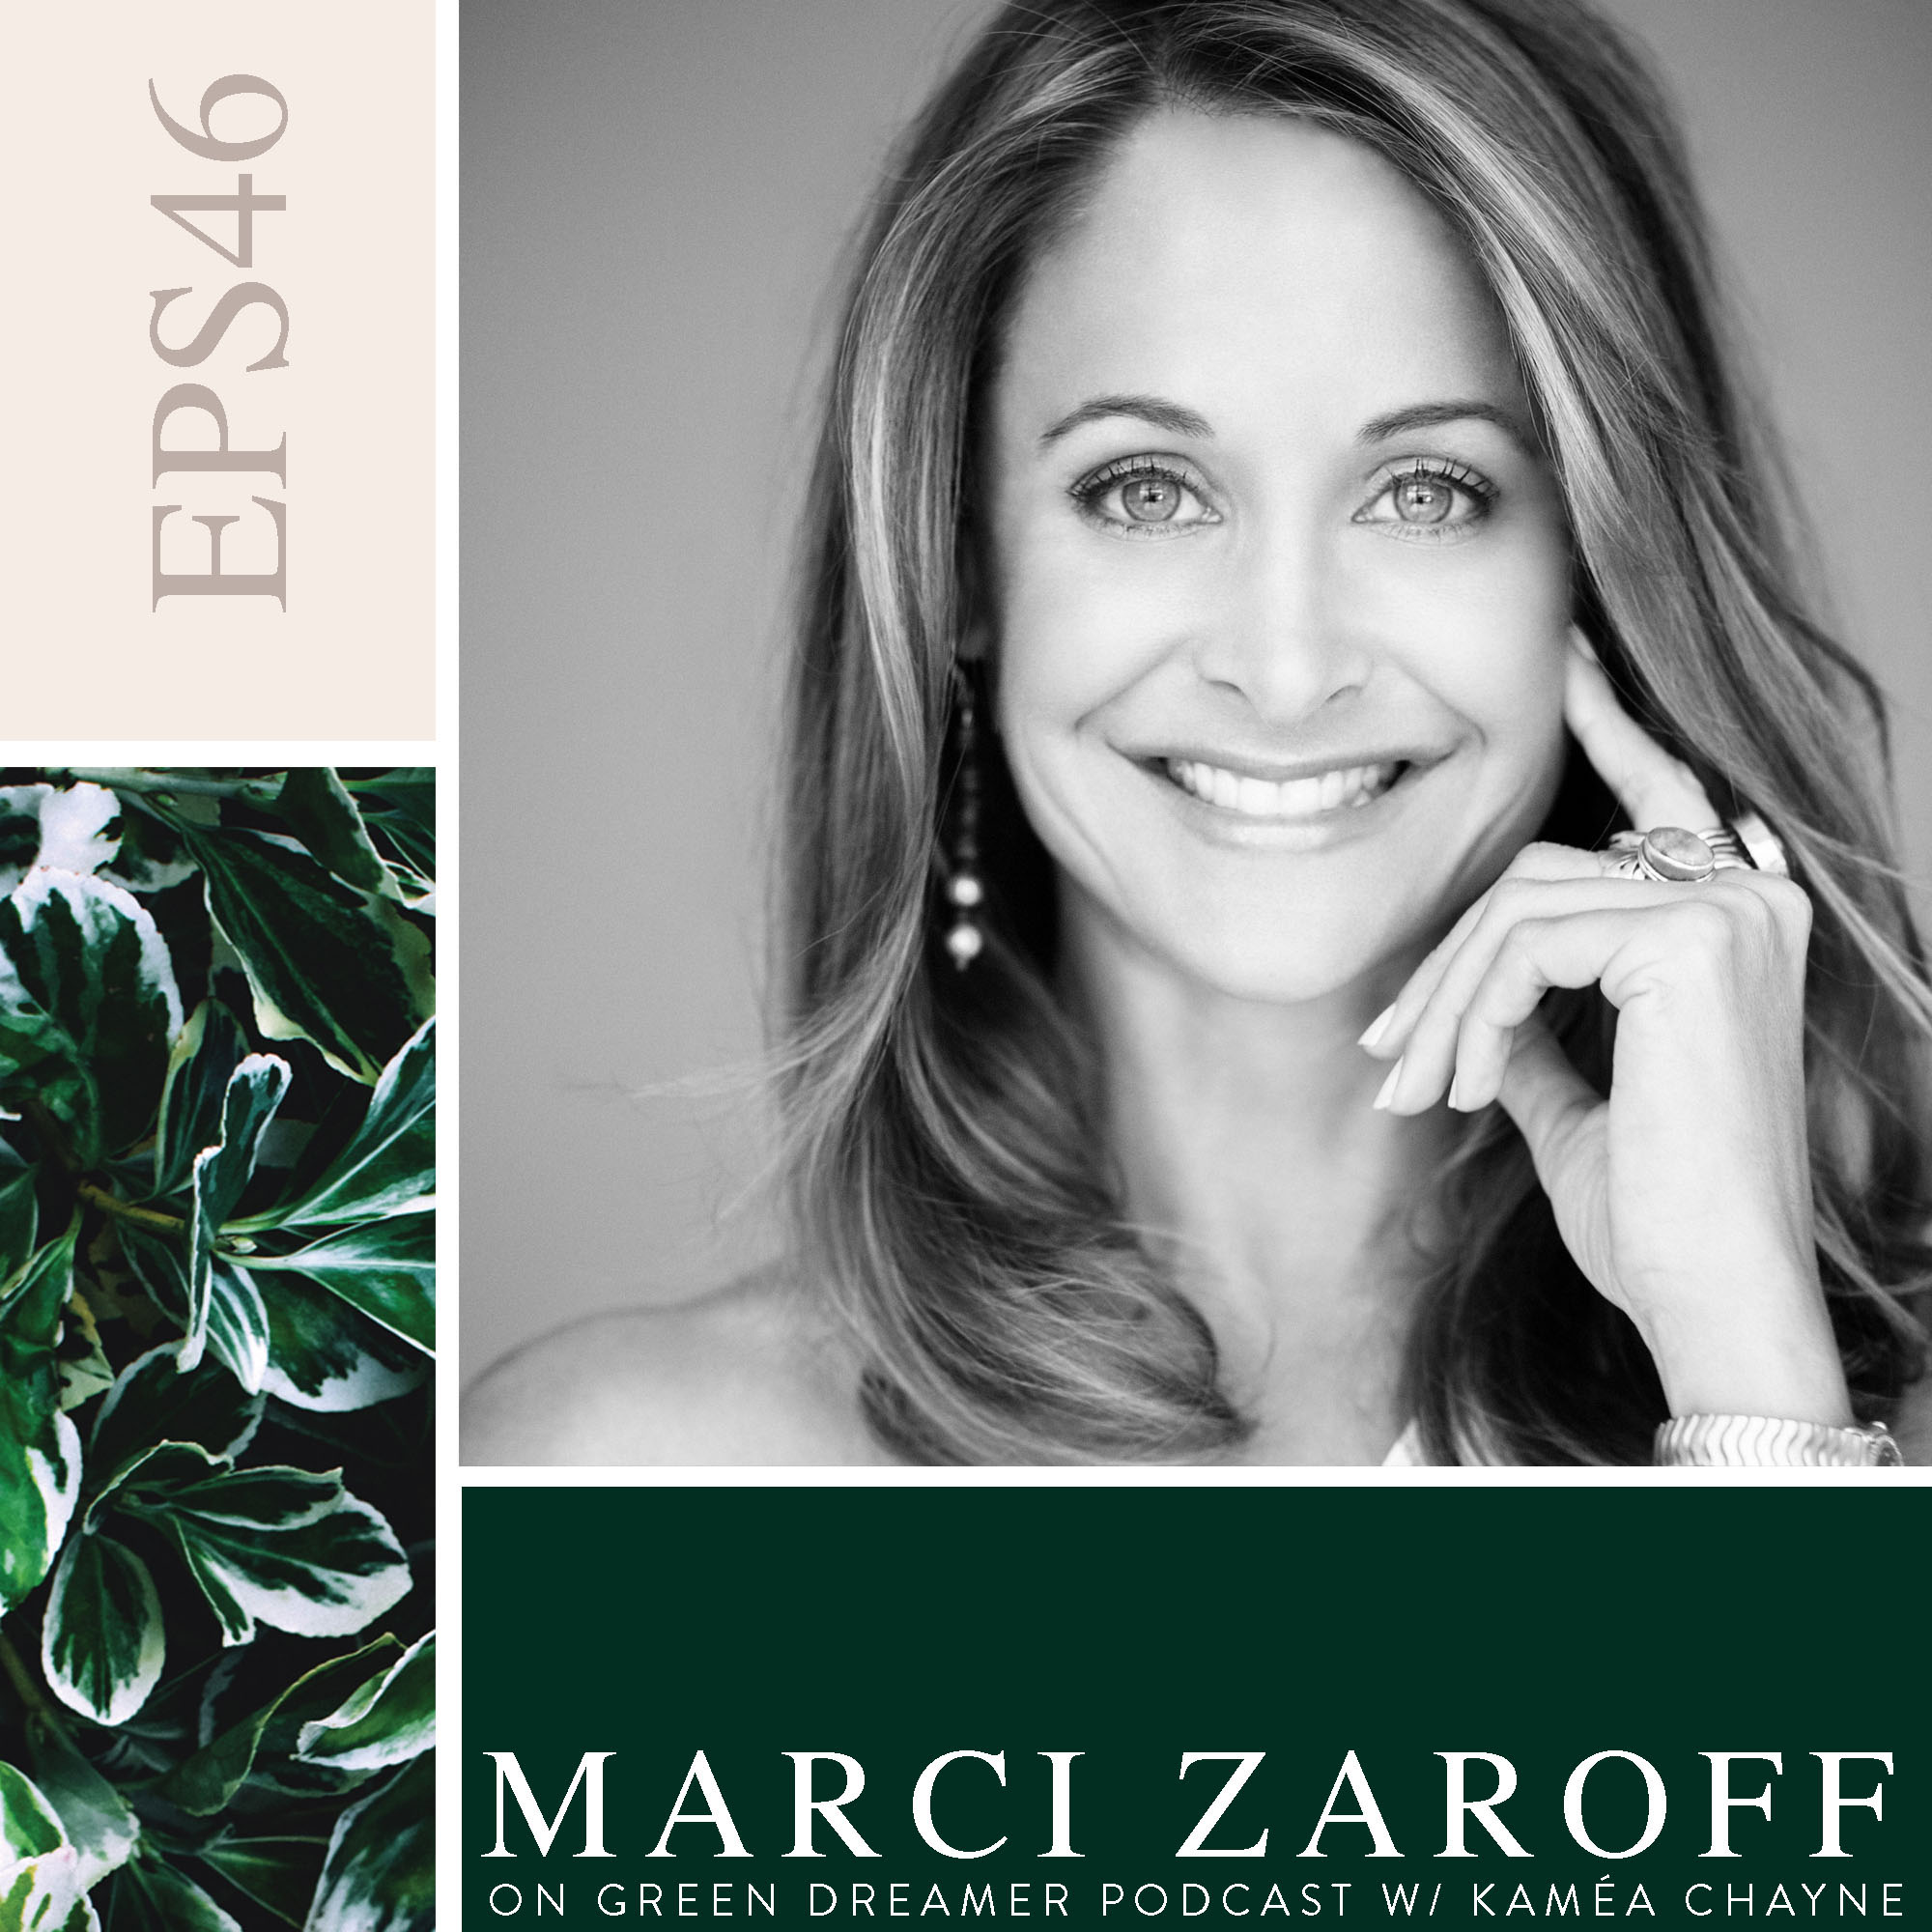 46) BW Marci-Zaroff-of-ECORenaissance-talks-sustainability-on-Green-Dreamer-Podcast-with-Kaméa-Chayne.jpg